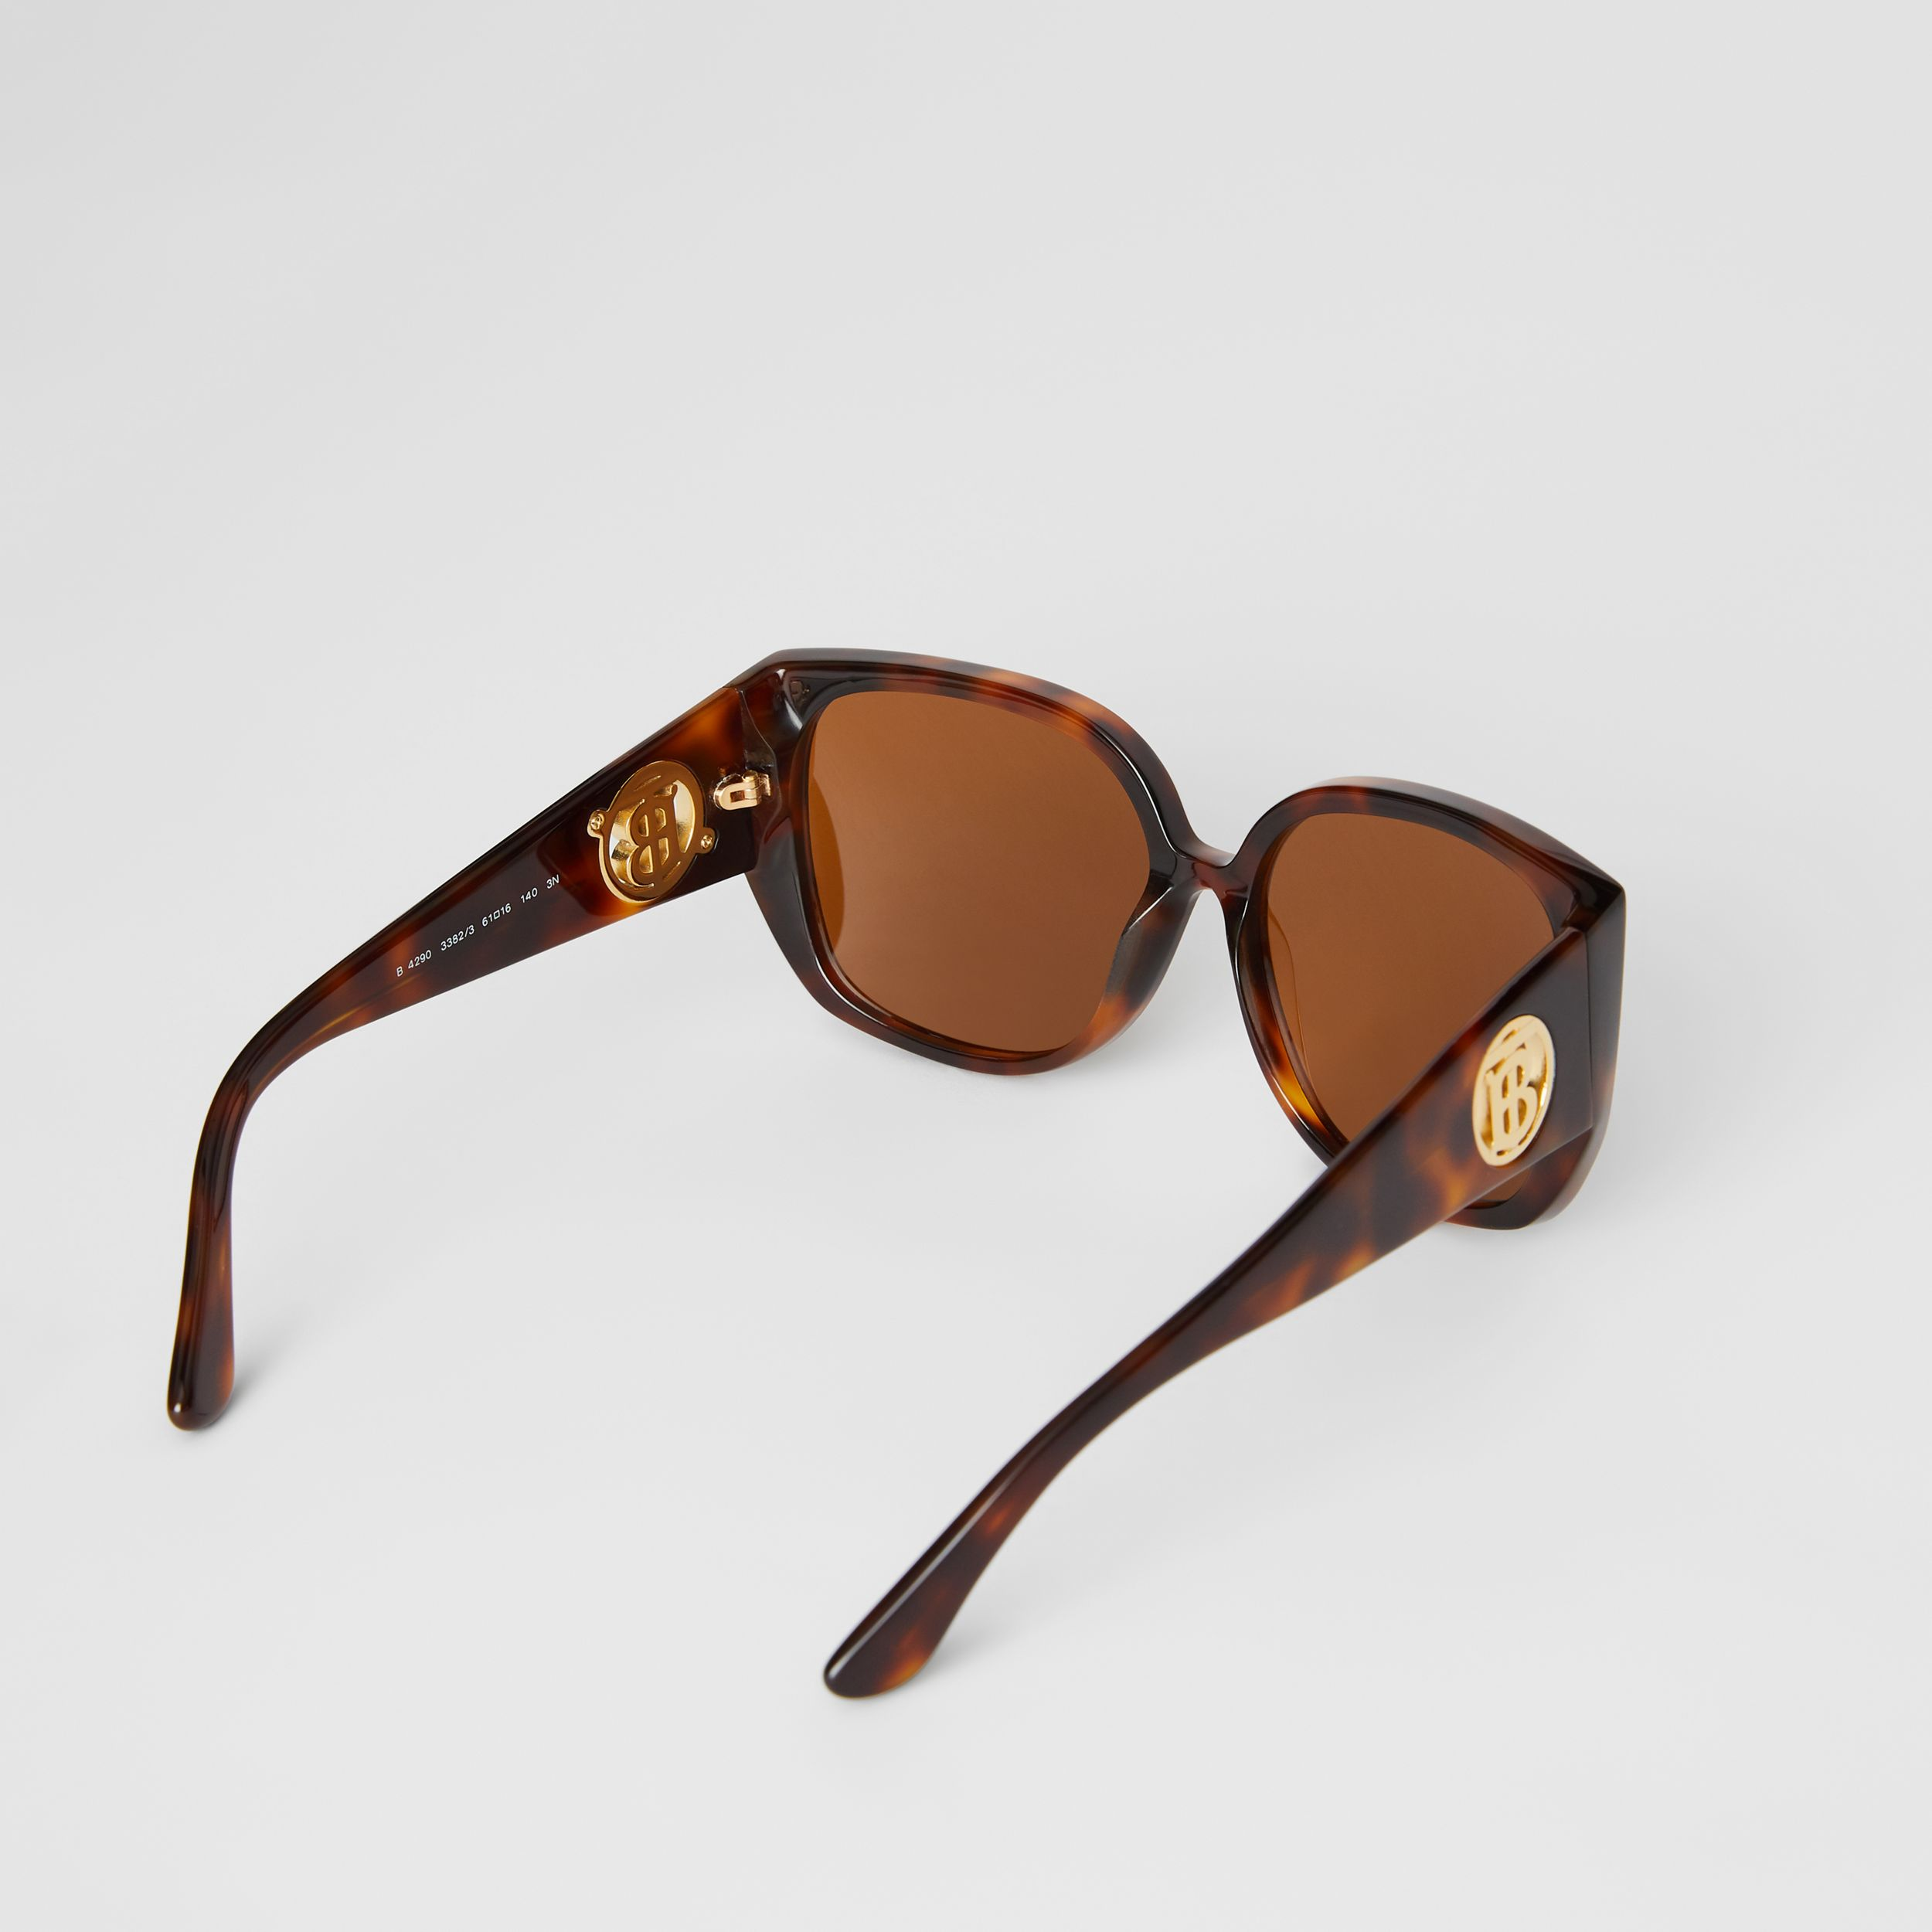 Oversized Butterfly Frame Sunglasses in Tortoiseshell - Women | Burberry Hong Kong S.A.R. - 4